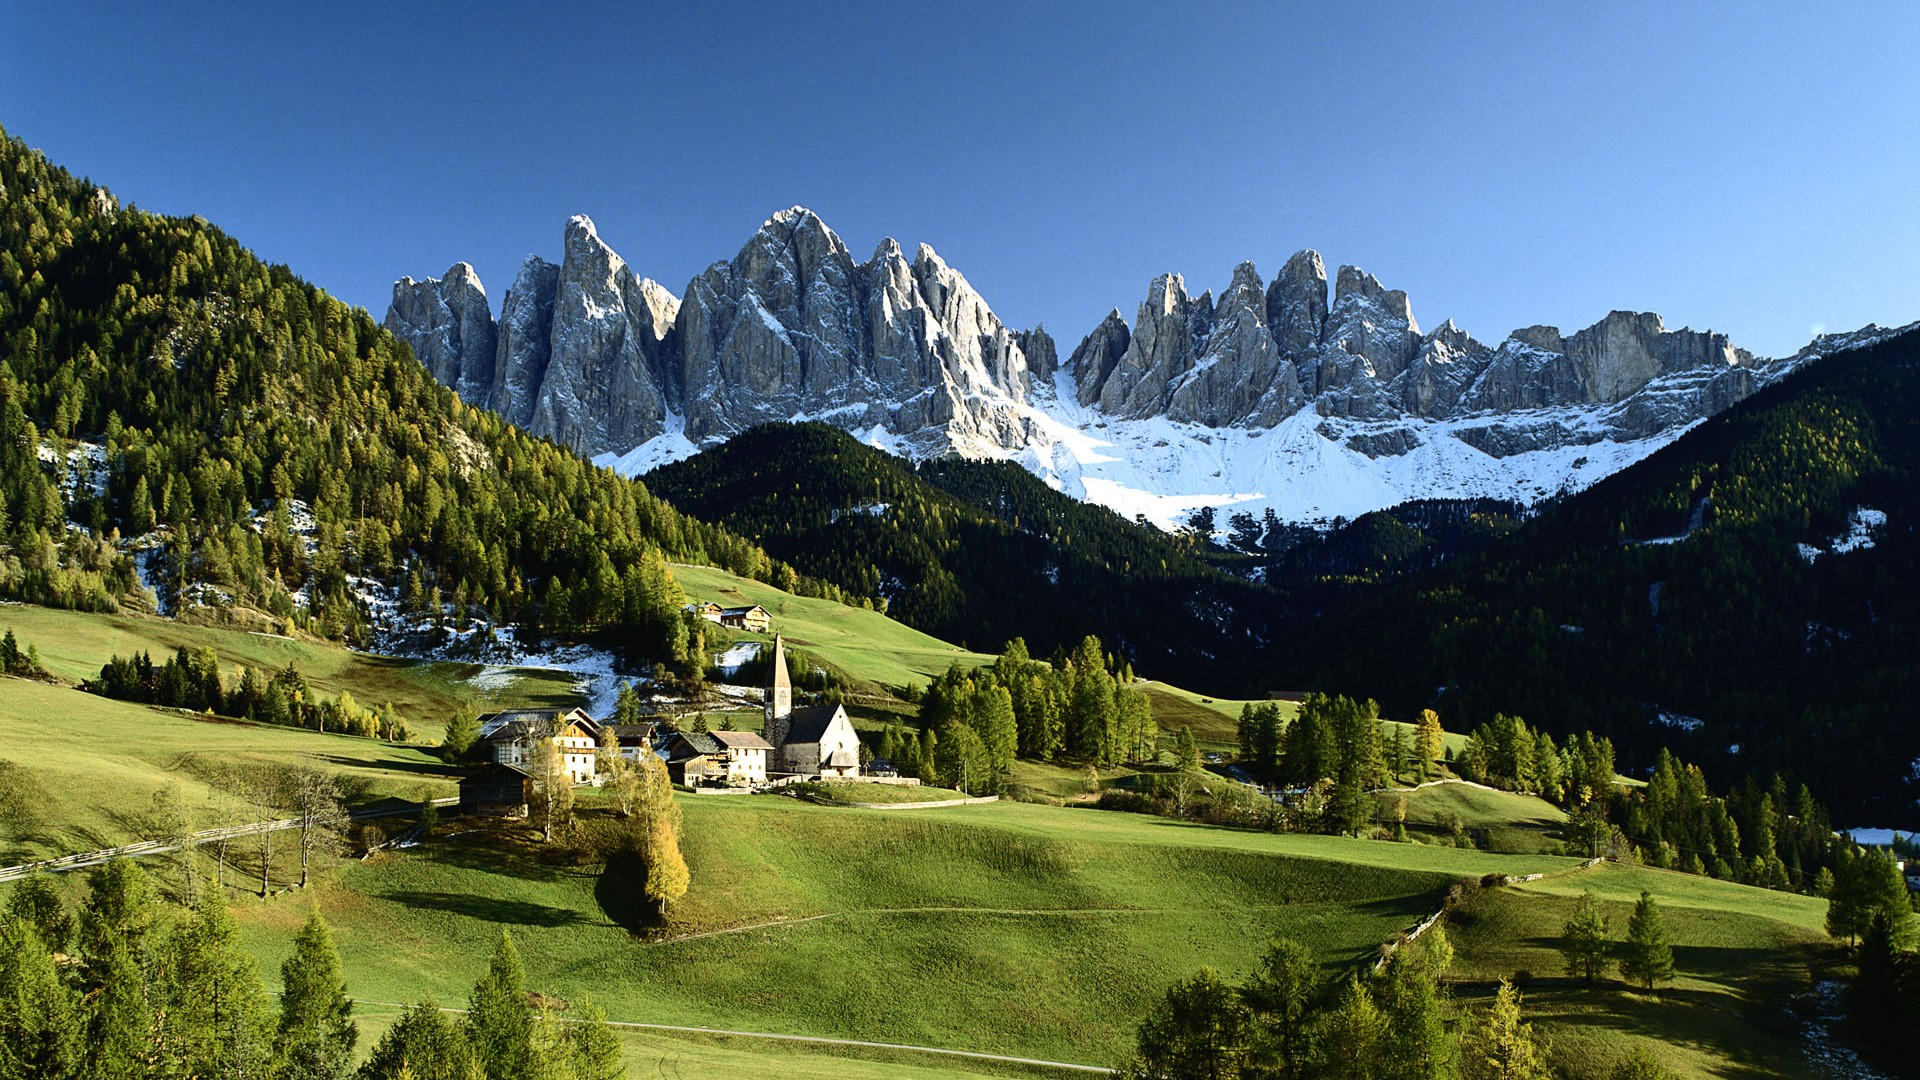 Wonderful Wallpaper Home Screen Mountain - a-beautiful-small-village-in-the-mountains  Graphic_806034.jpg